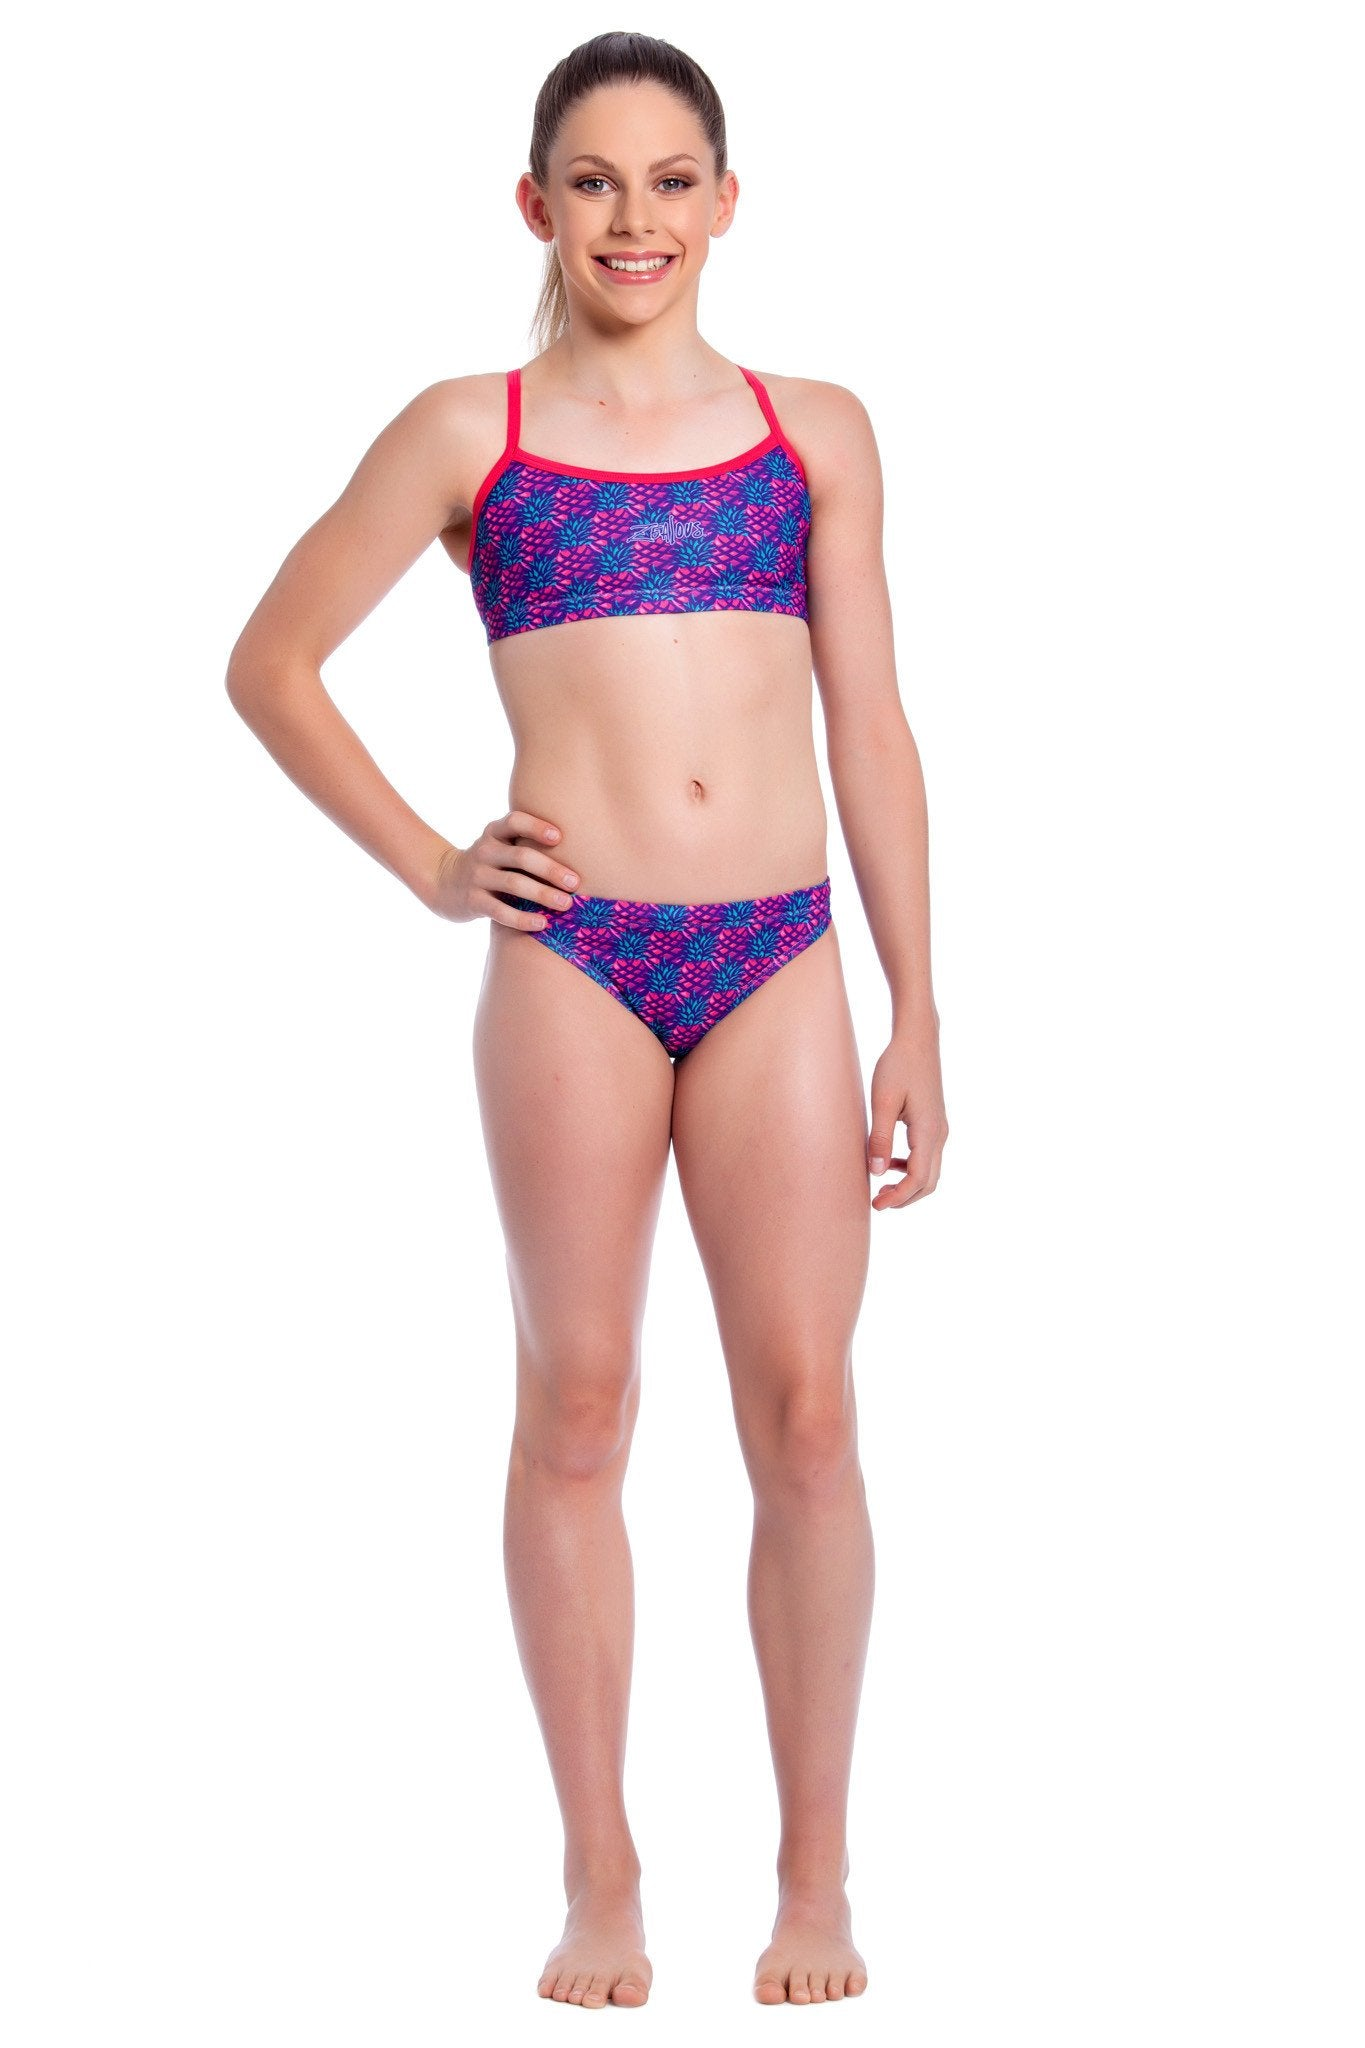 Pink Paradise - Girls 10 ONLY Girls Two Piece - Shop Zealous Training Swimwear